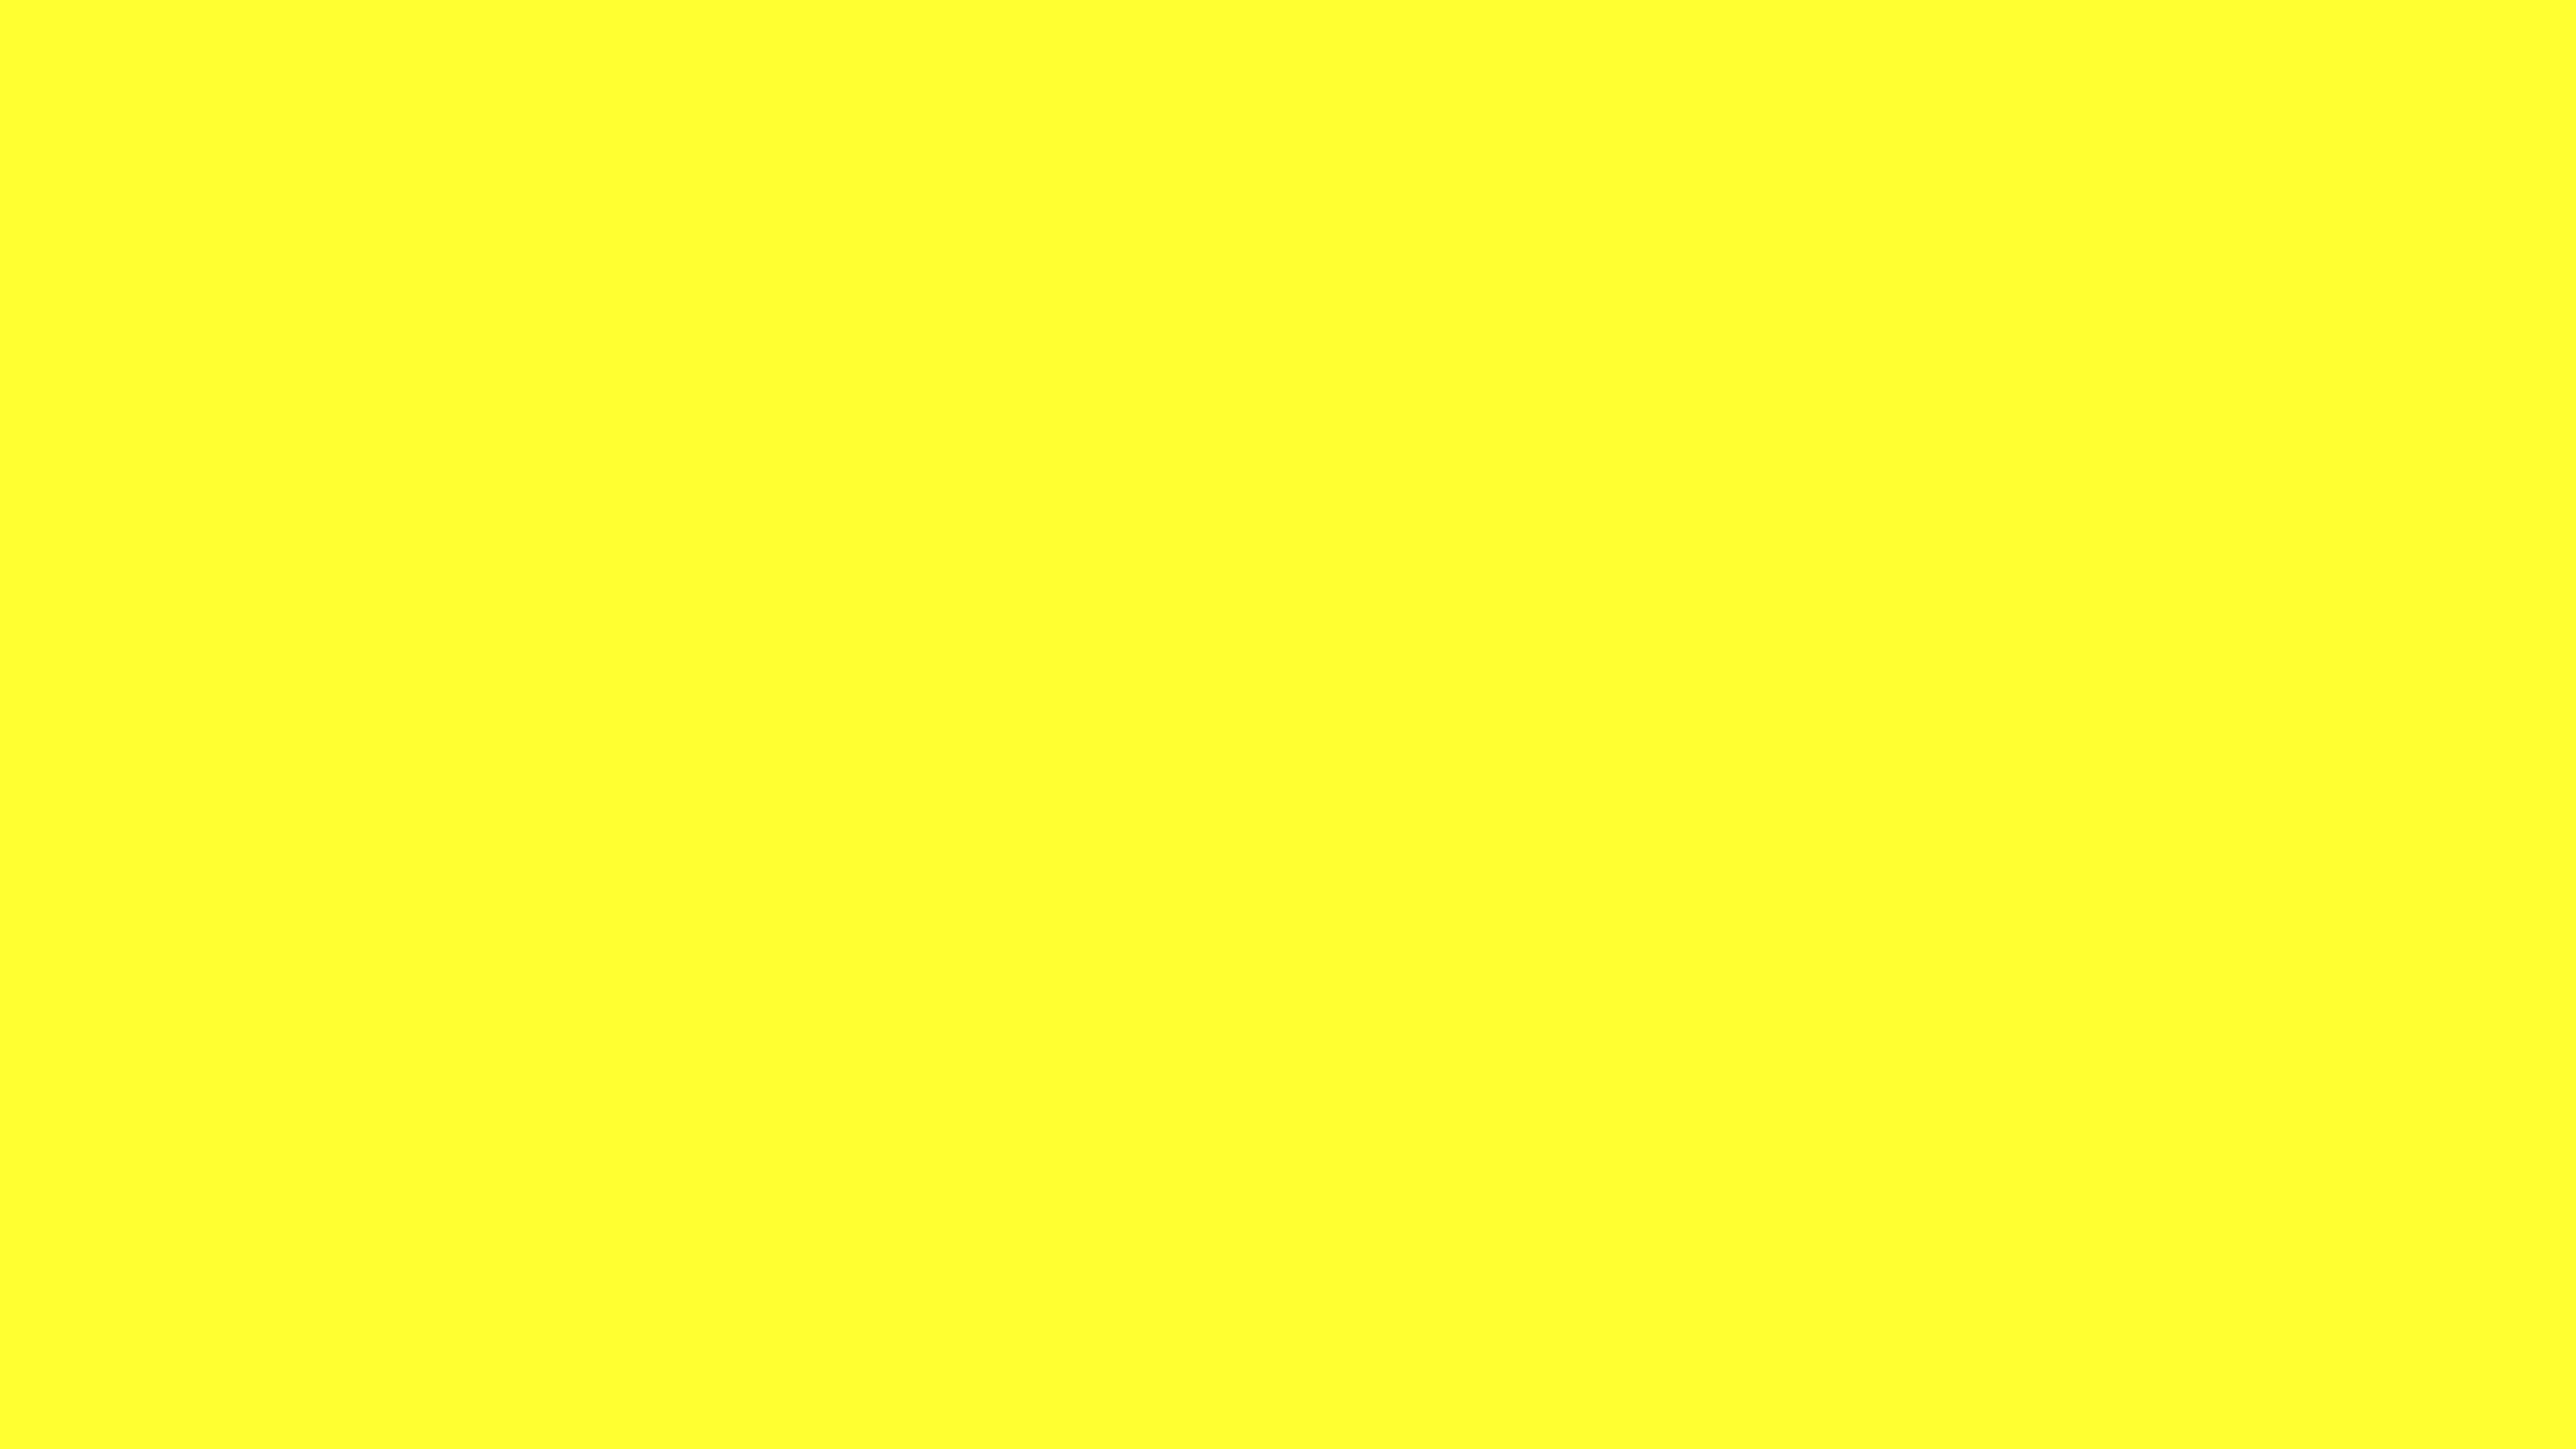 5120x2880 Daffodil Solid Color Background